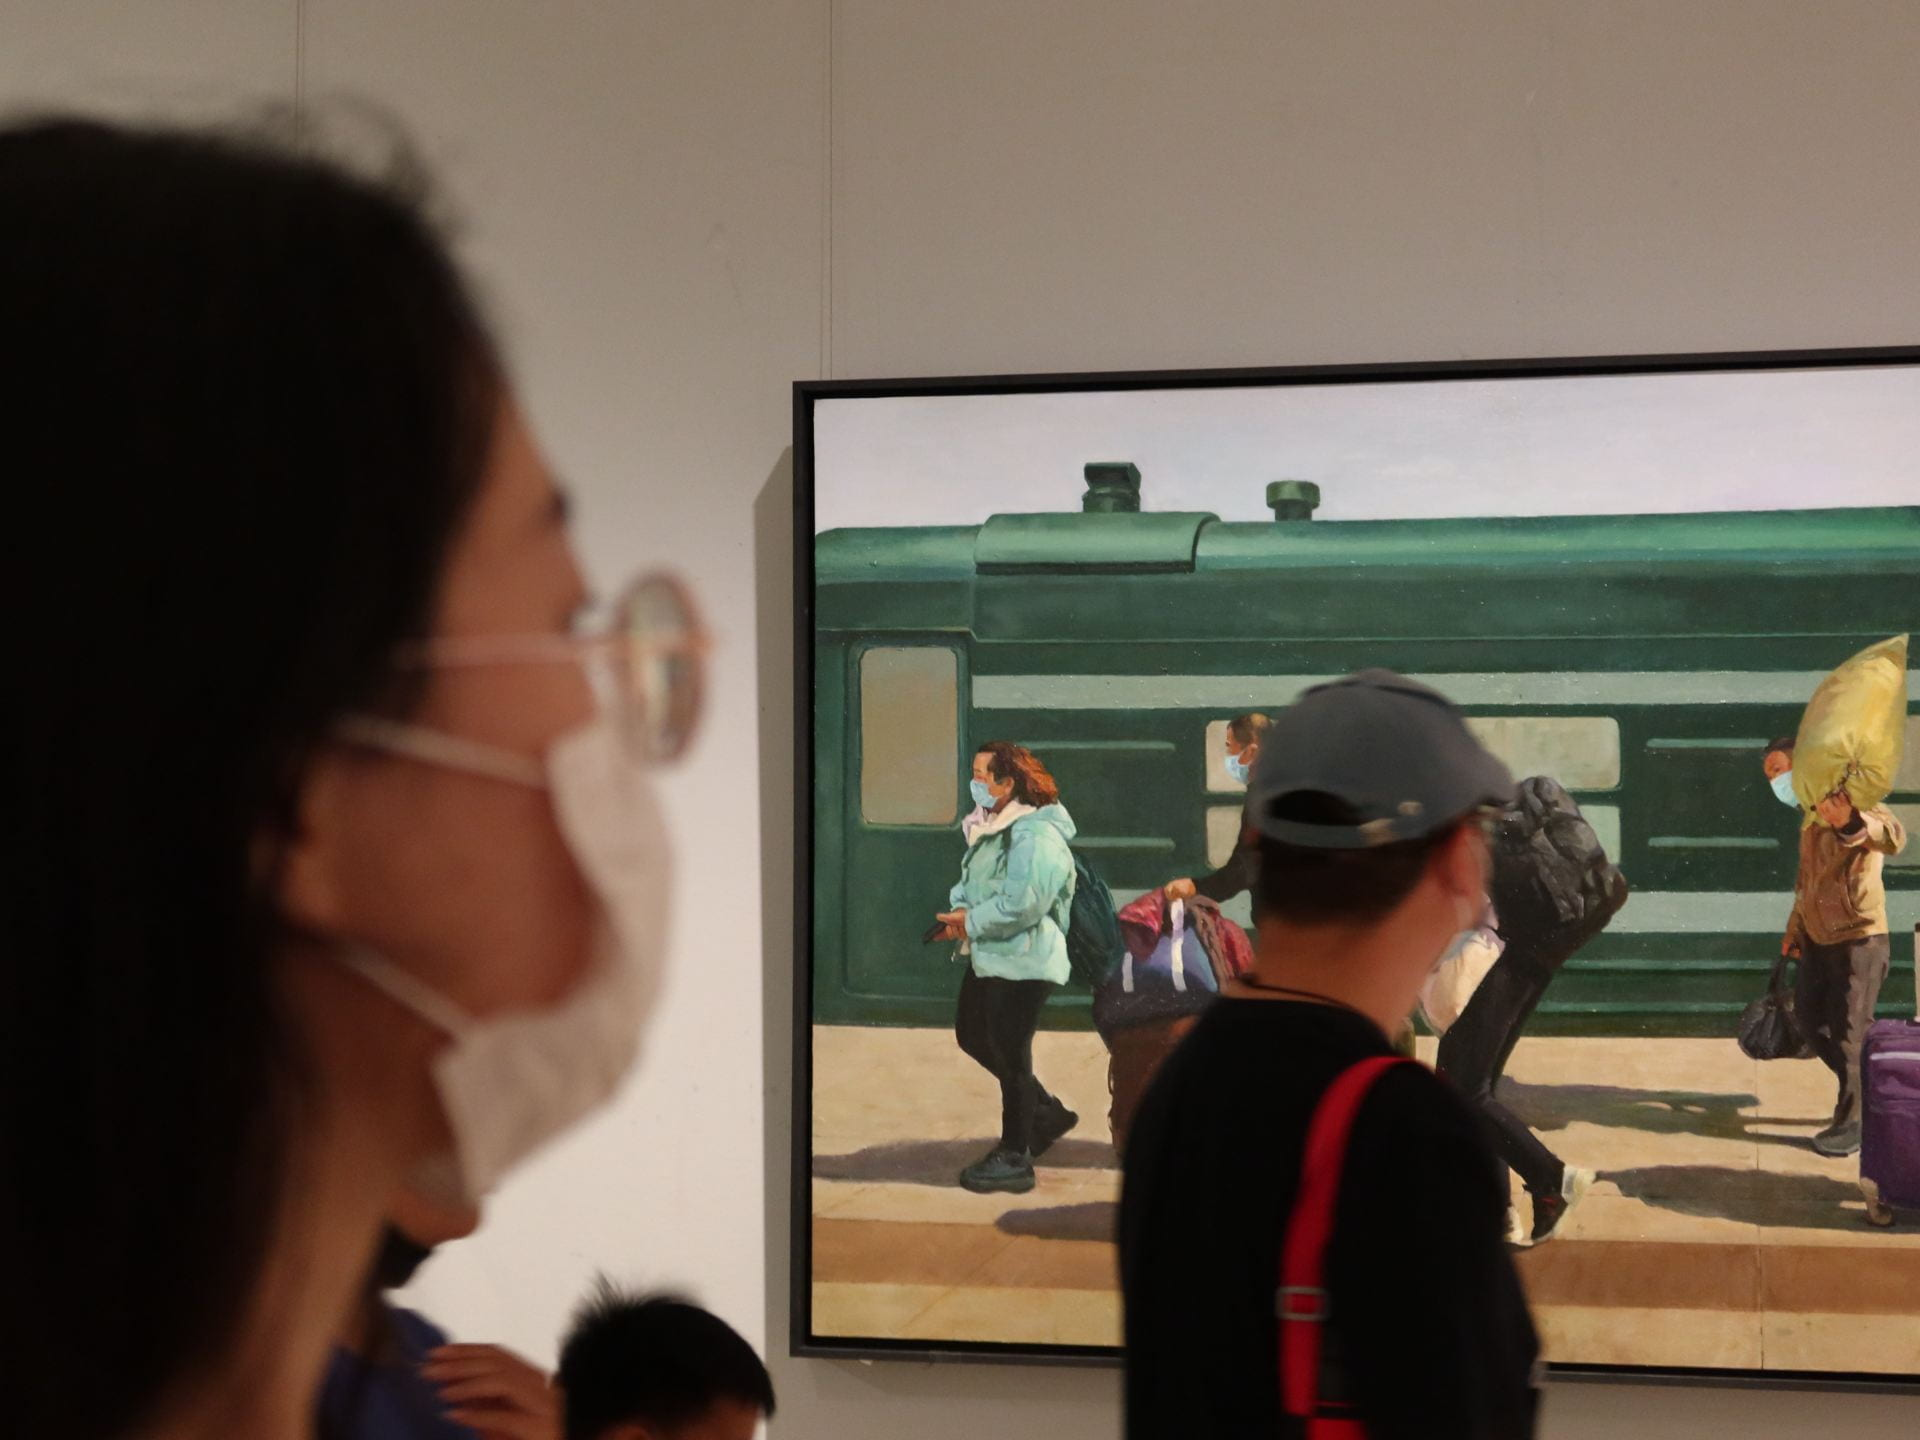 Person wearing a mask, looking at someone else who is looking at a painting of people getting off a train, all wearing masks